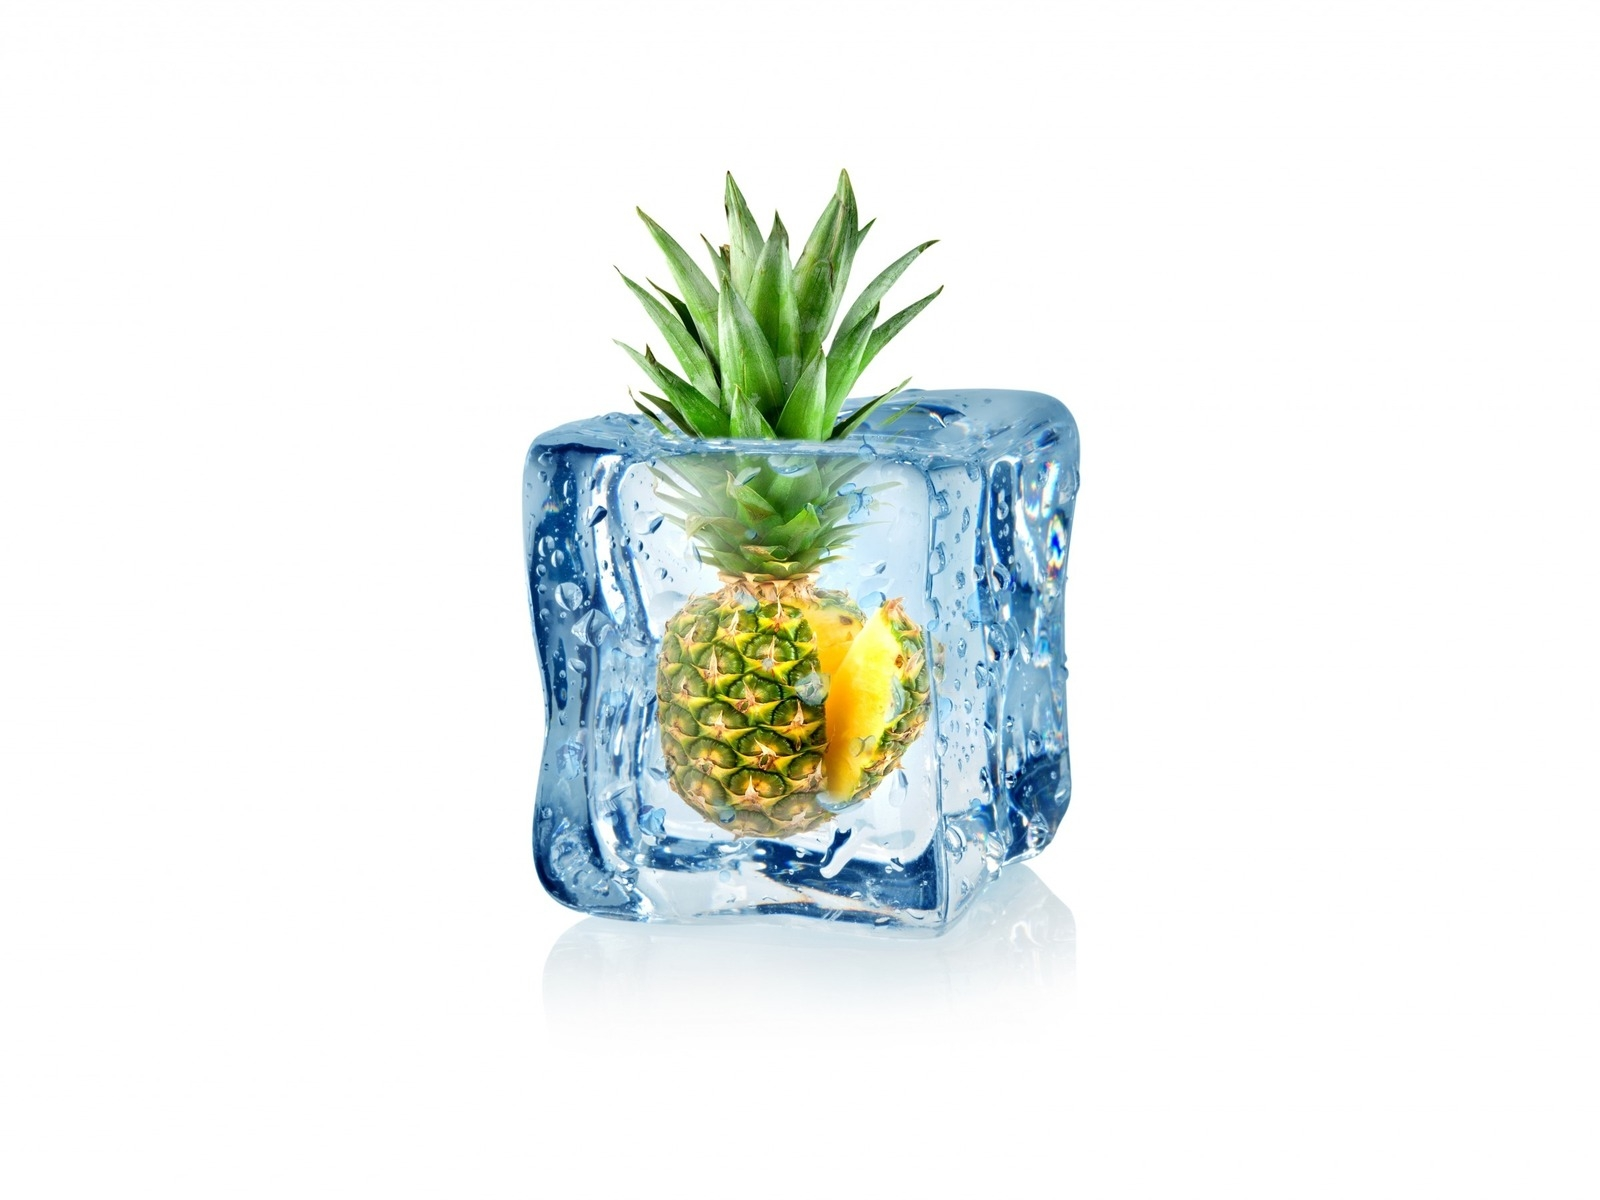 Frozen Pineapple for 1600 x 1200 resolution